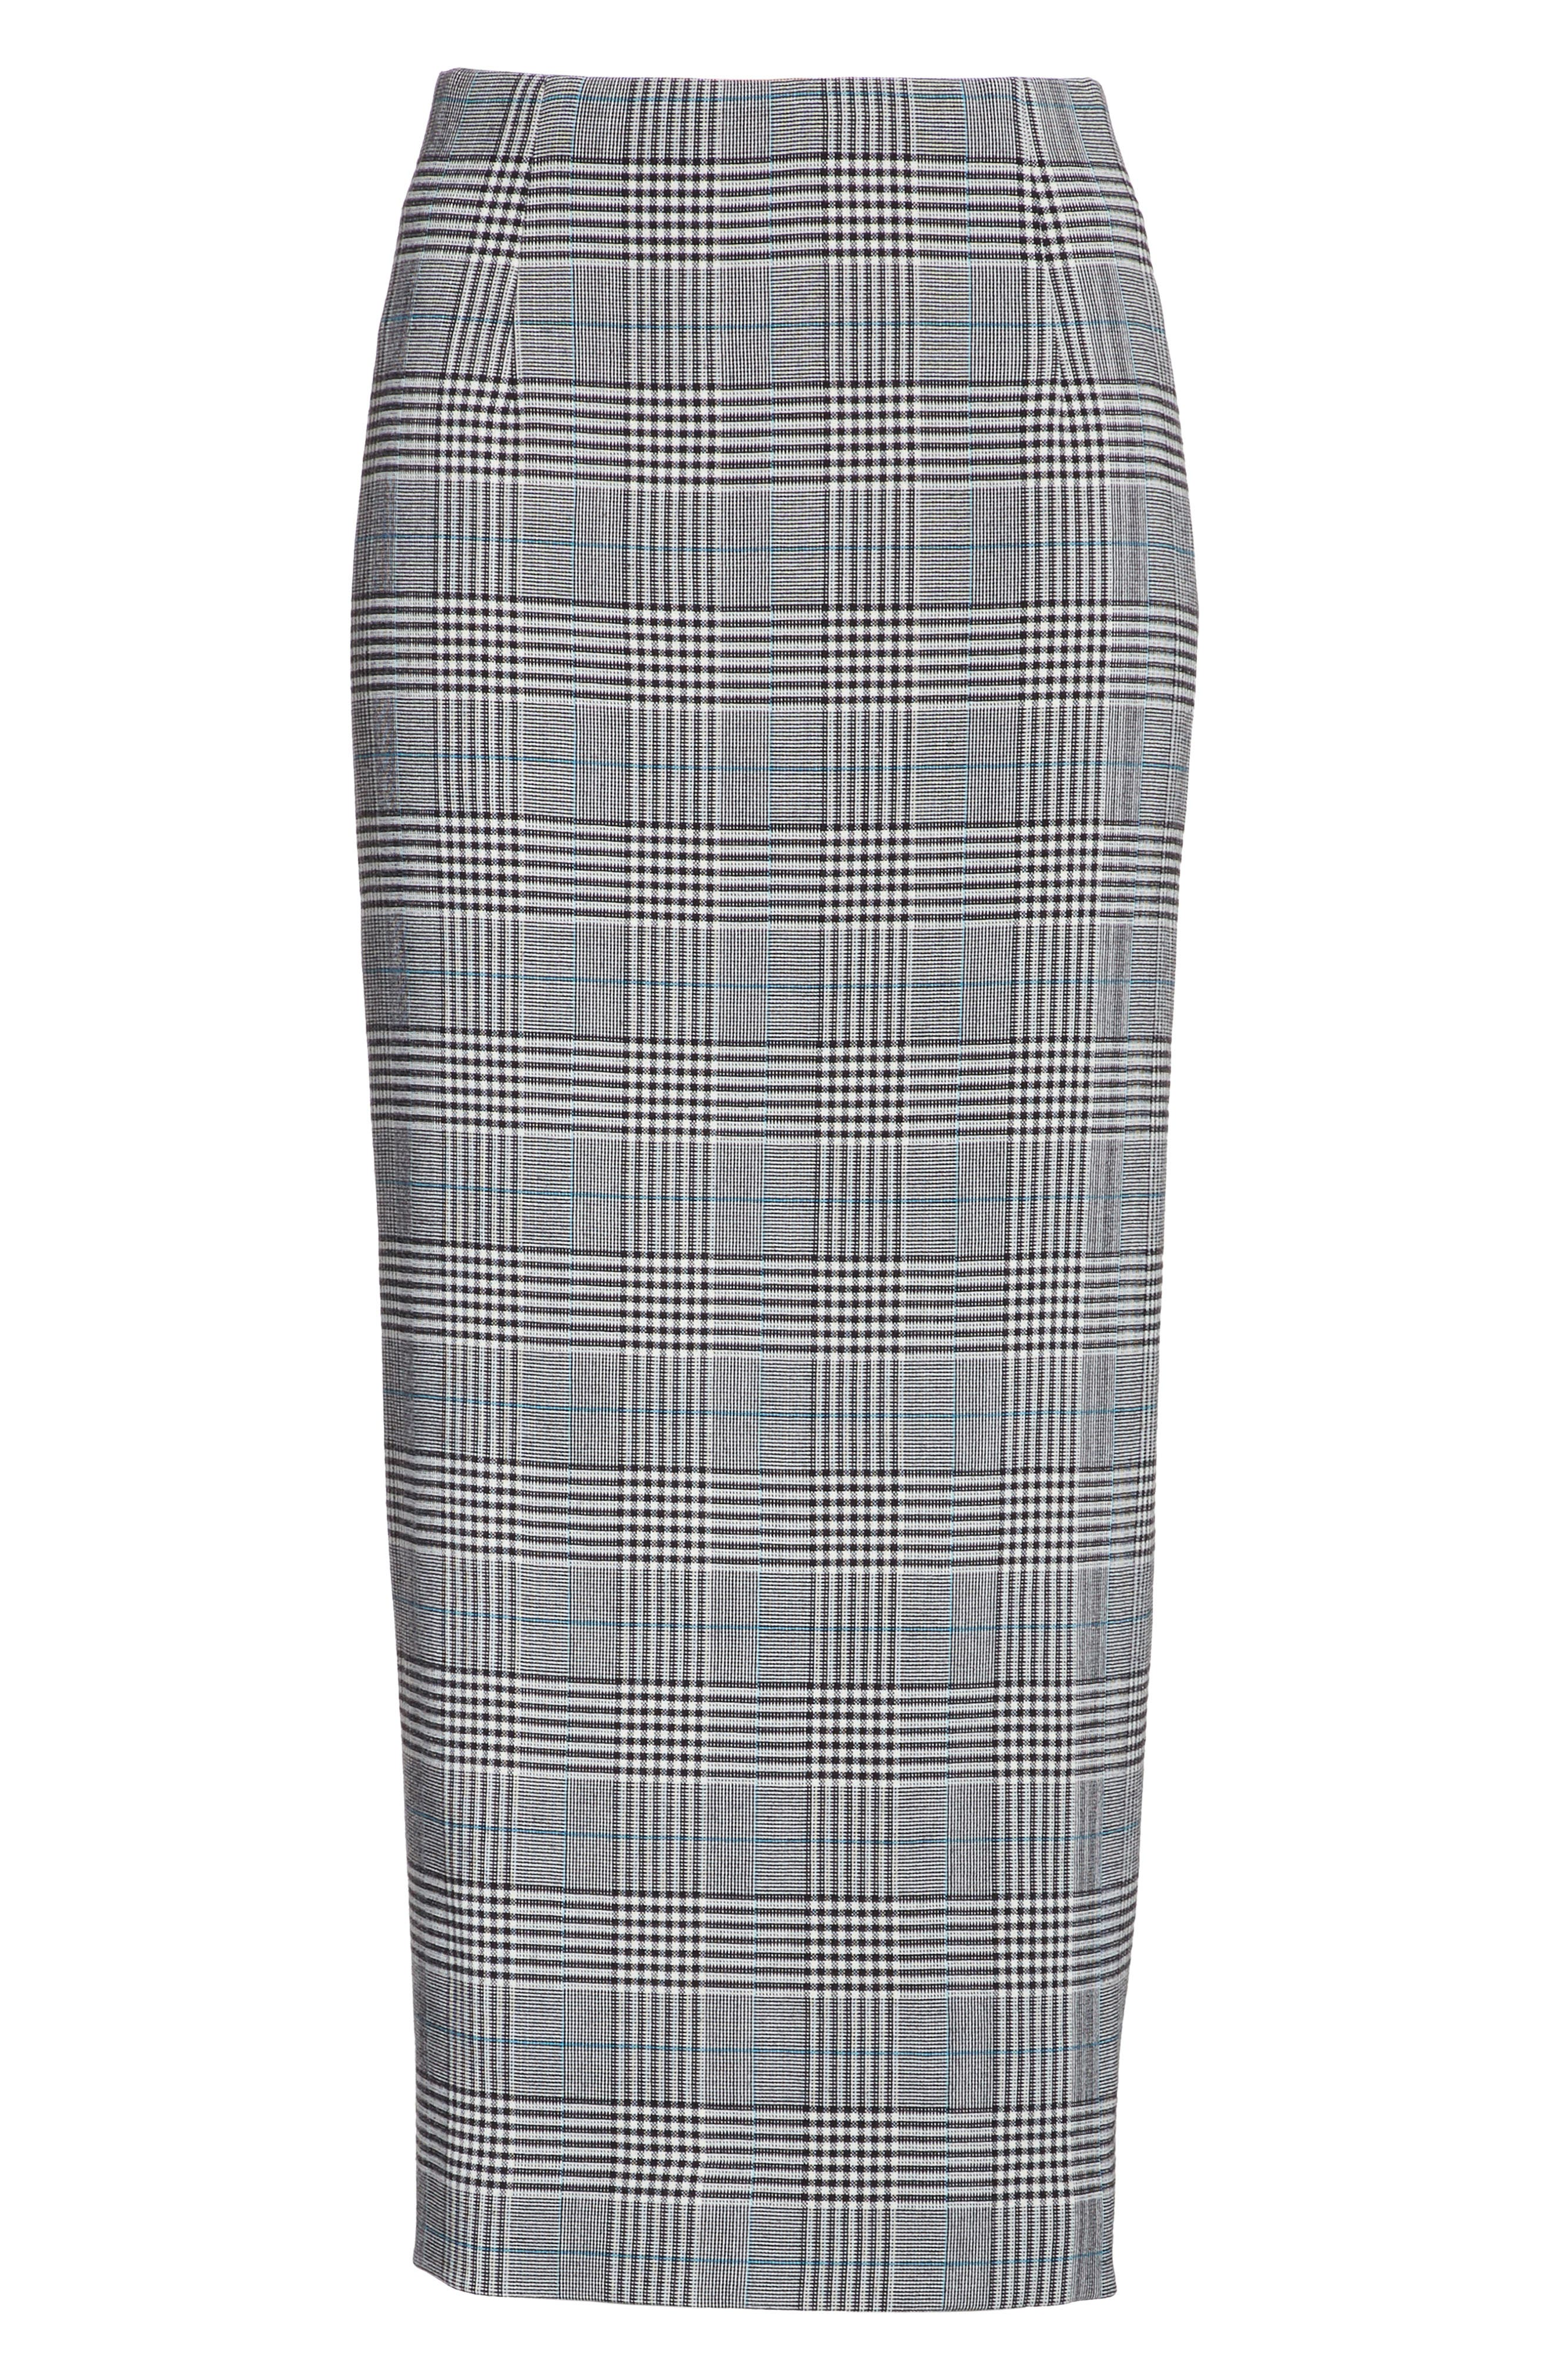 Prince of Wales High Waist Pencil Skirt,                             Alternate thumbnail 6, color,                             001